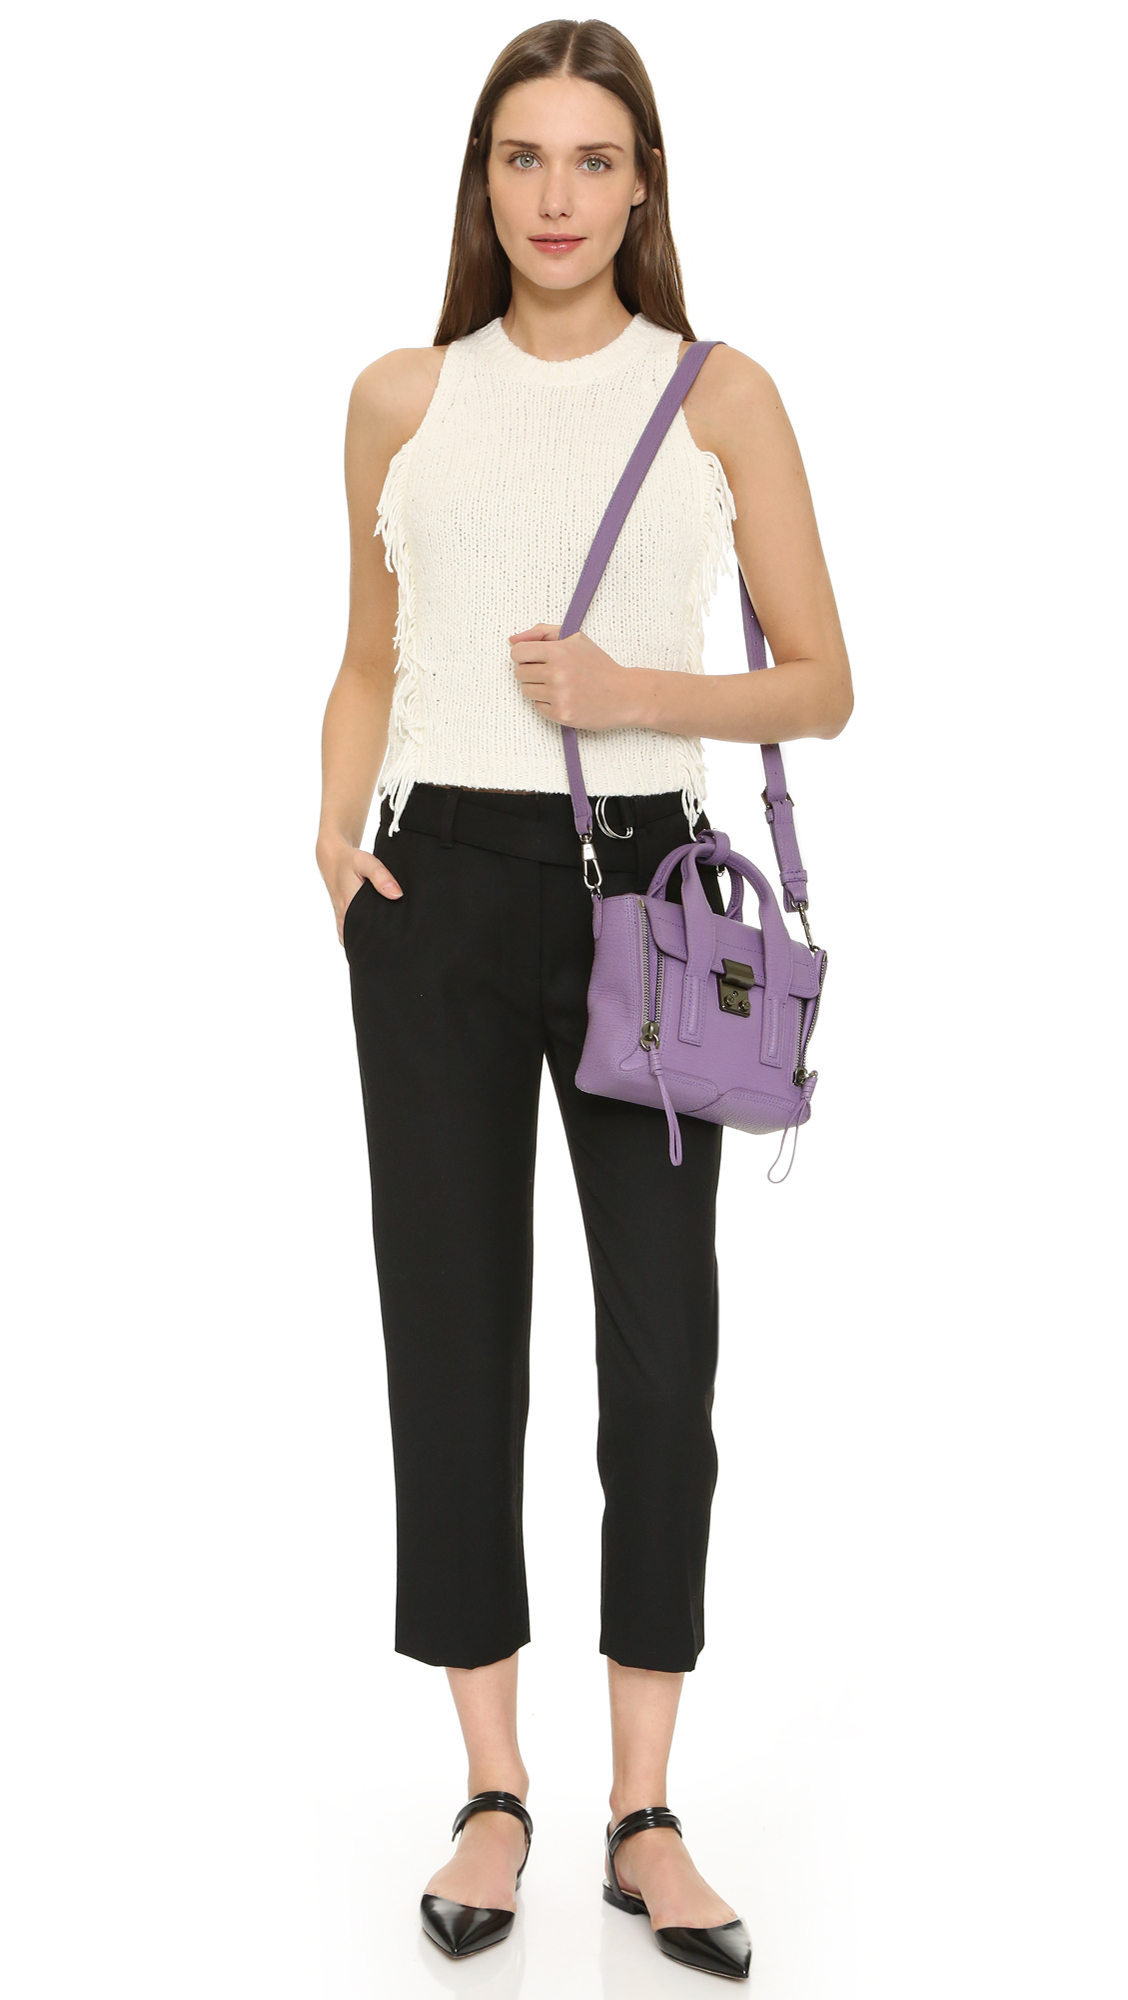 6a322d123d5 Lyst - 3.1 Phillip Lim Pashli Mini Satchel in Purple